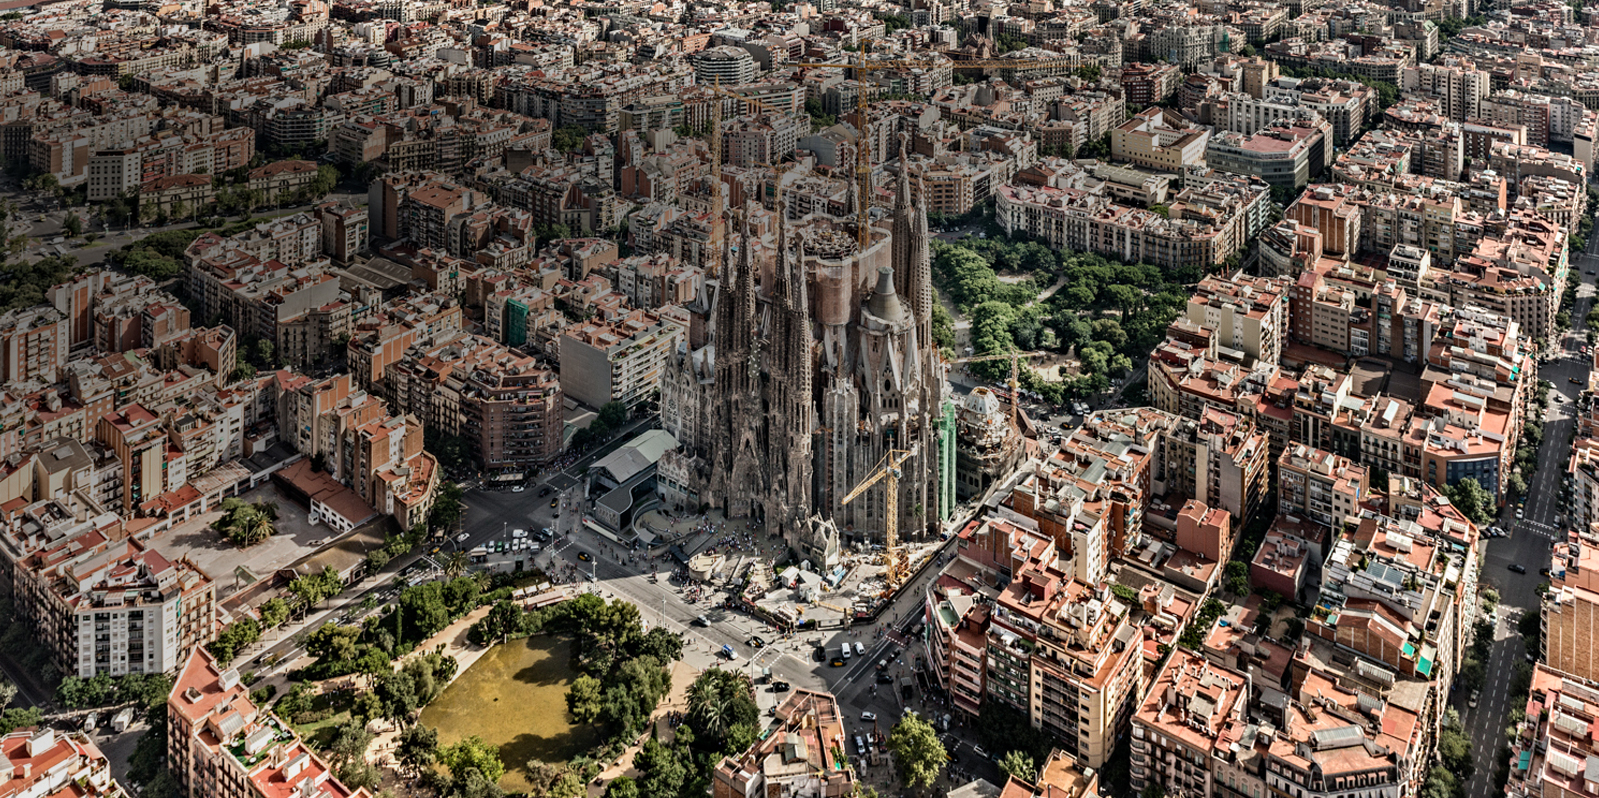 Aerial view of the Sagrada Familia